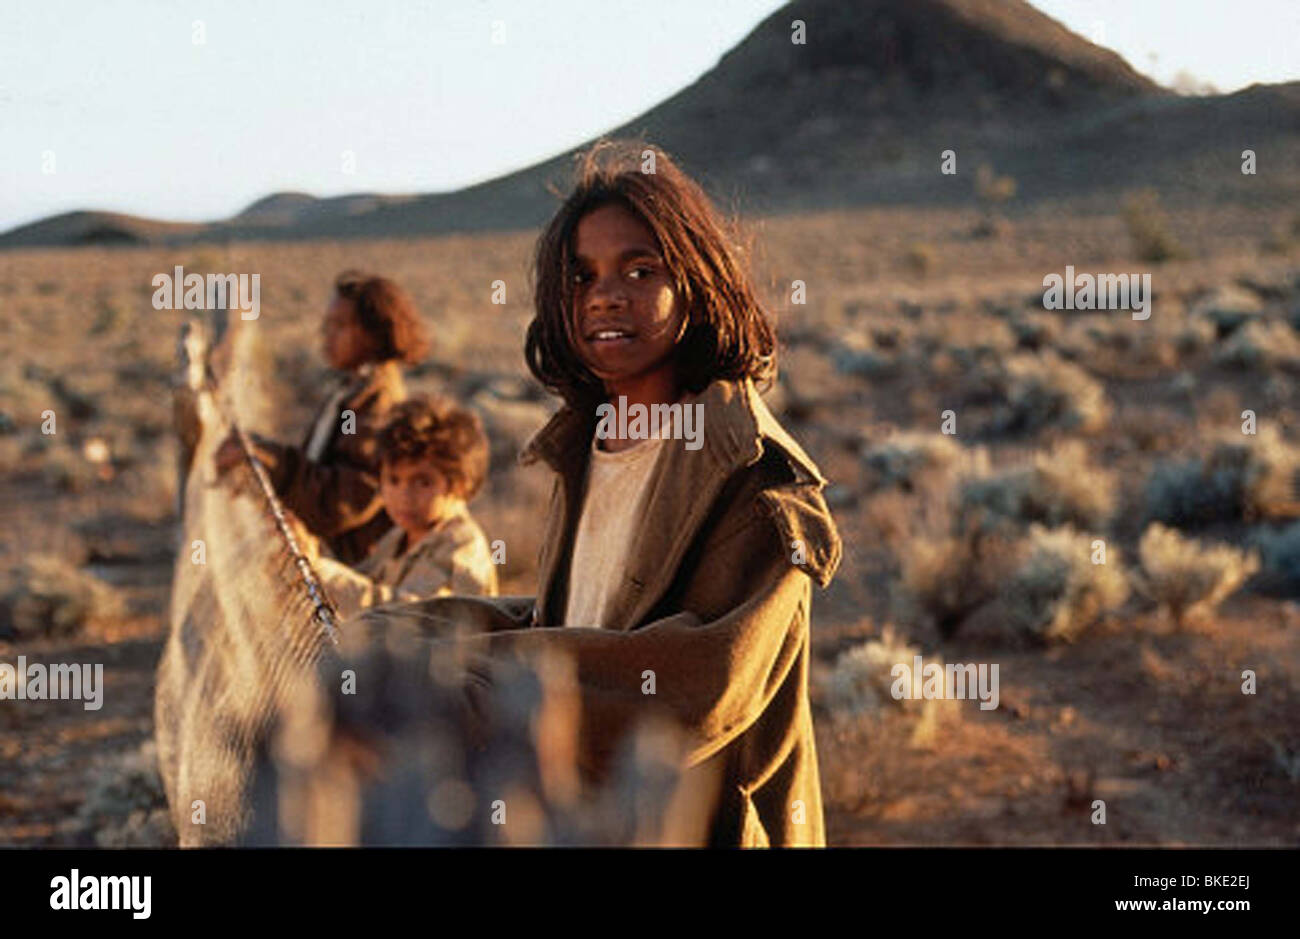 RABBIT PROOF FENCE 2002 TIANNA SANSBURY LAURA MONAGAN RPFF 001 01